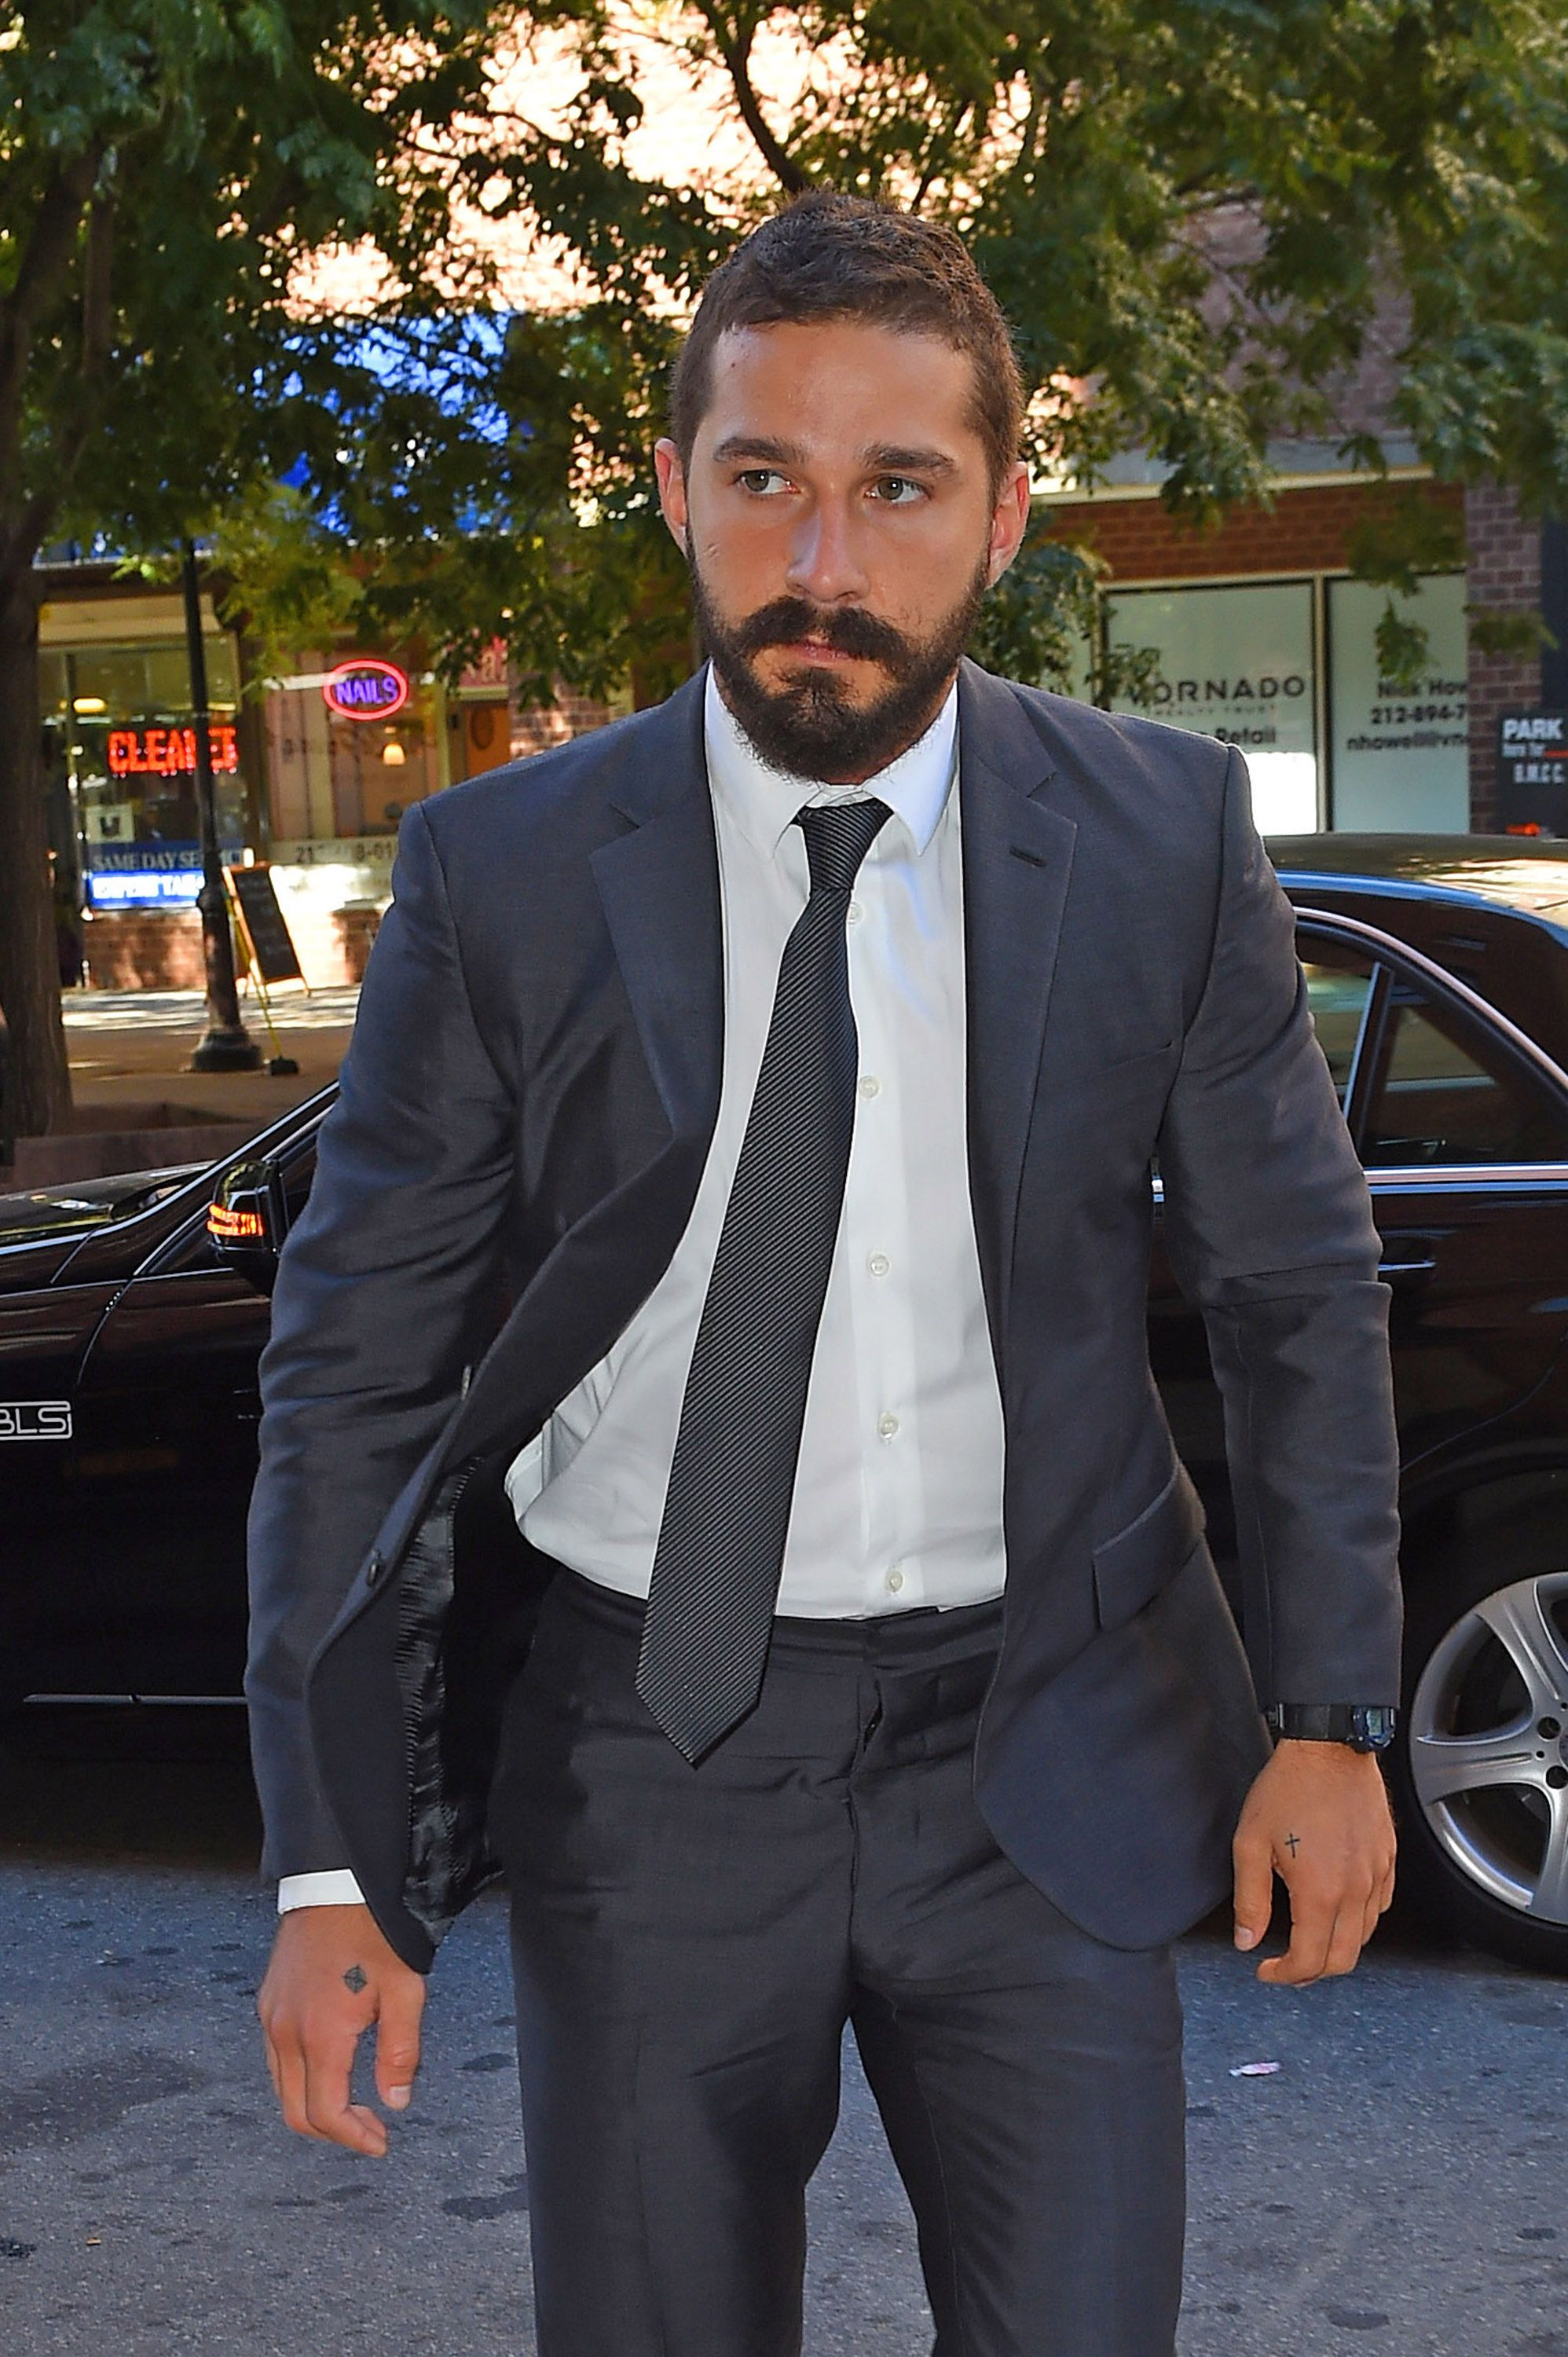 Shia LaBeouf and Mia Goth Are Reportedly Engaged Shia